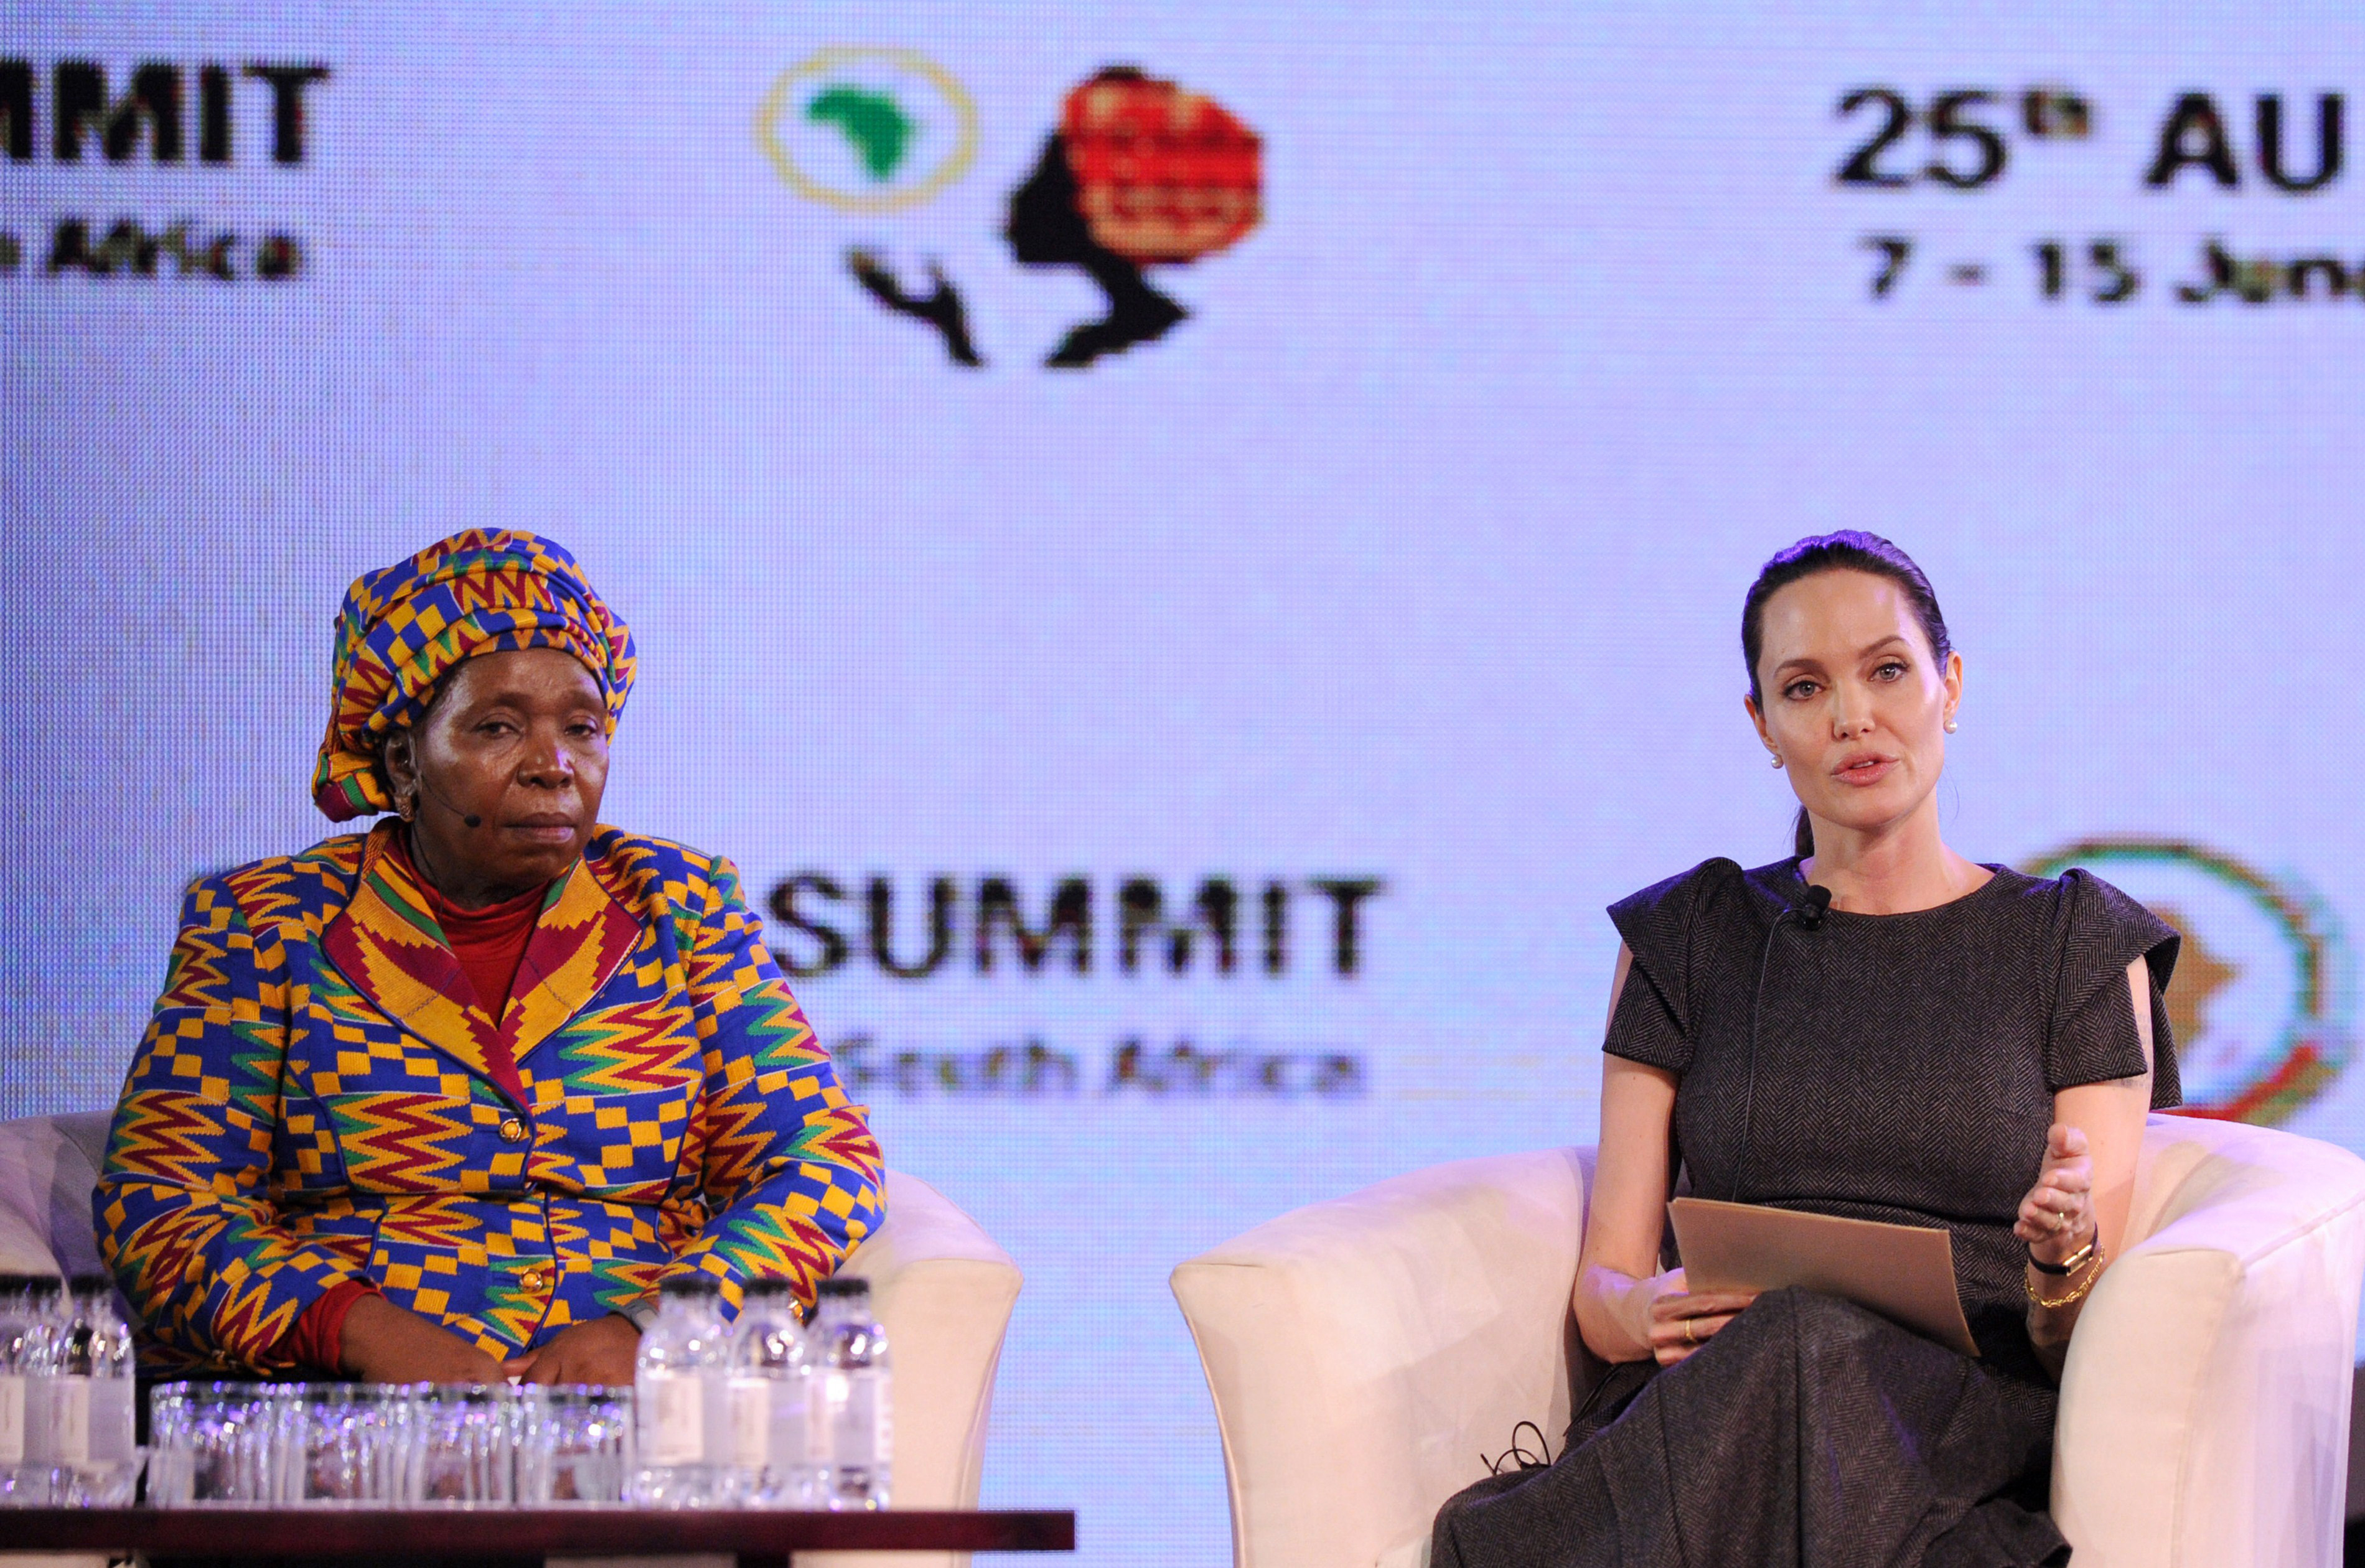 African Union Commssion Chairperson Nkosazana Dlamini-Zuma and Angelina Jolie attend a panel discussion on Conflict related Gender Violence during an African Union Summit session in Johannesburg  on June 12, 2015.